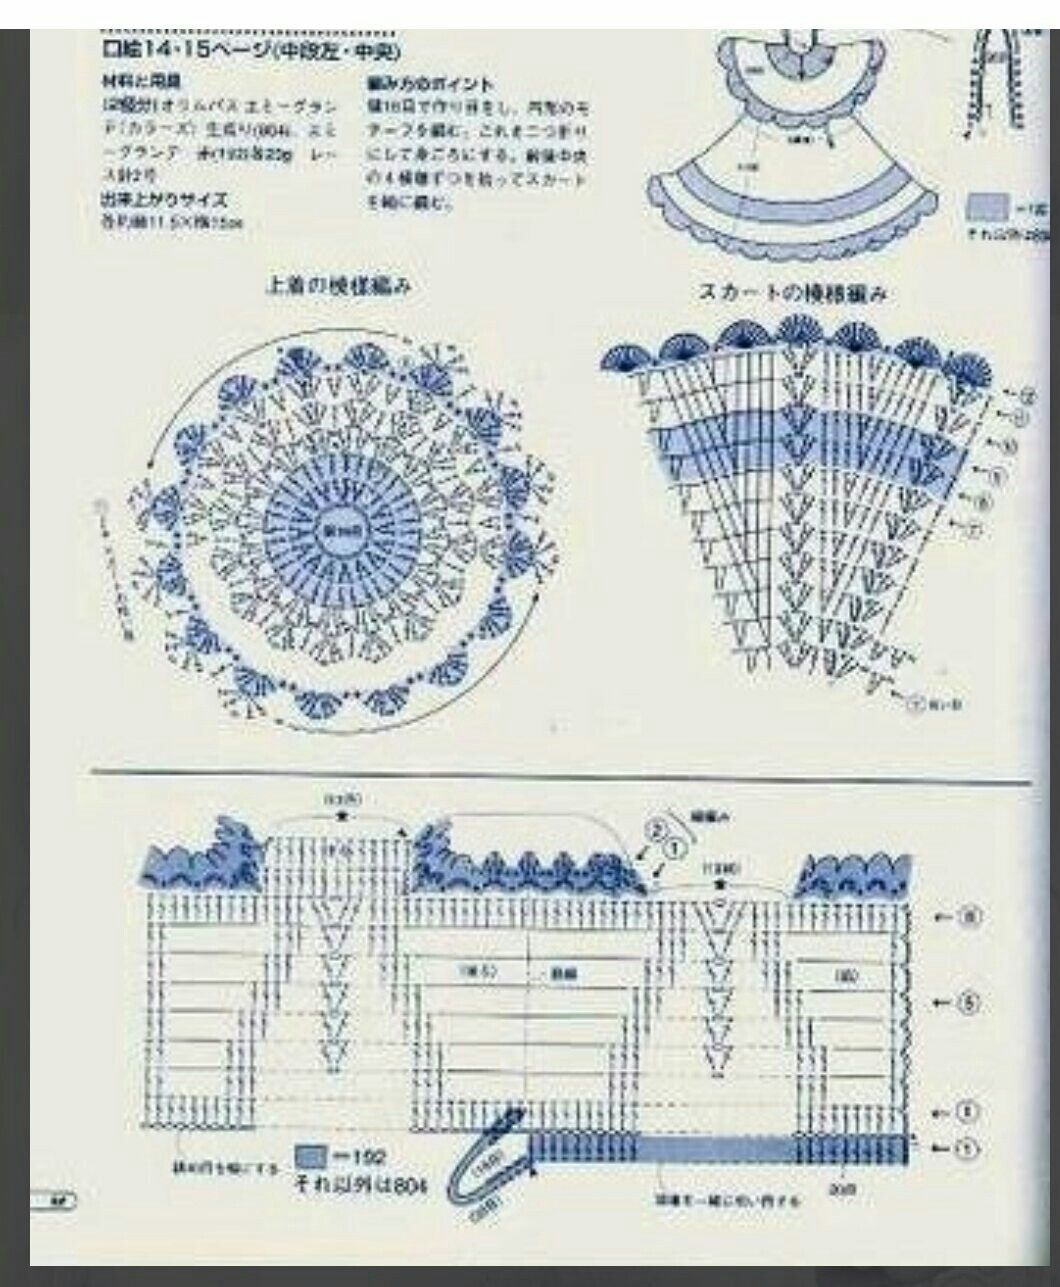 Pin by Rosa on diagramas | Pinterest | Crochet, Amigurumi and Potholders